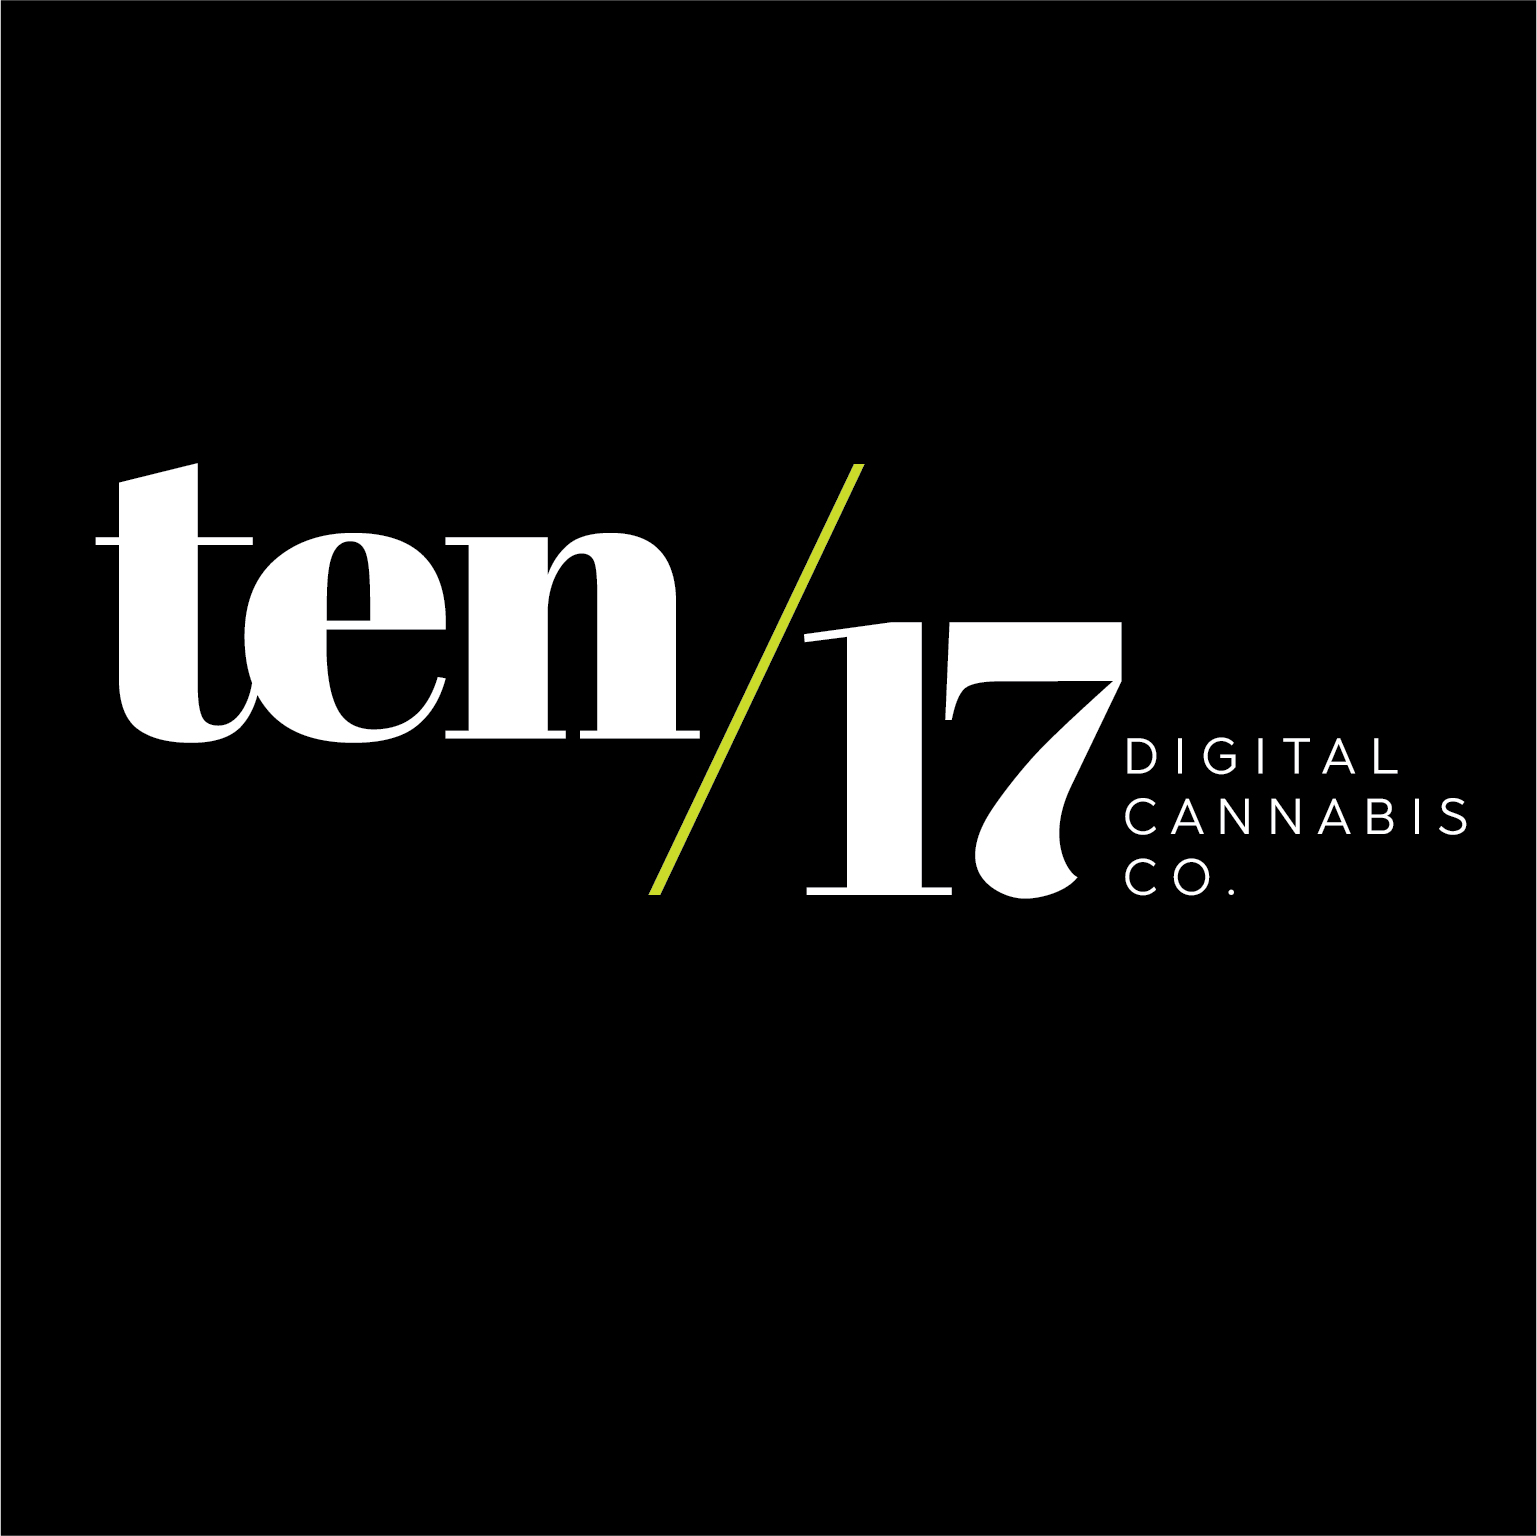 Ten/17 Digital Cannabis Co. Logo